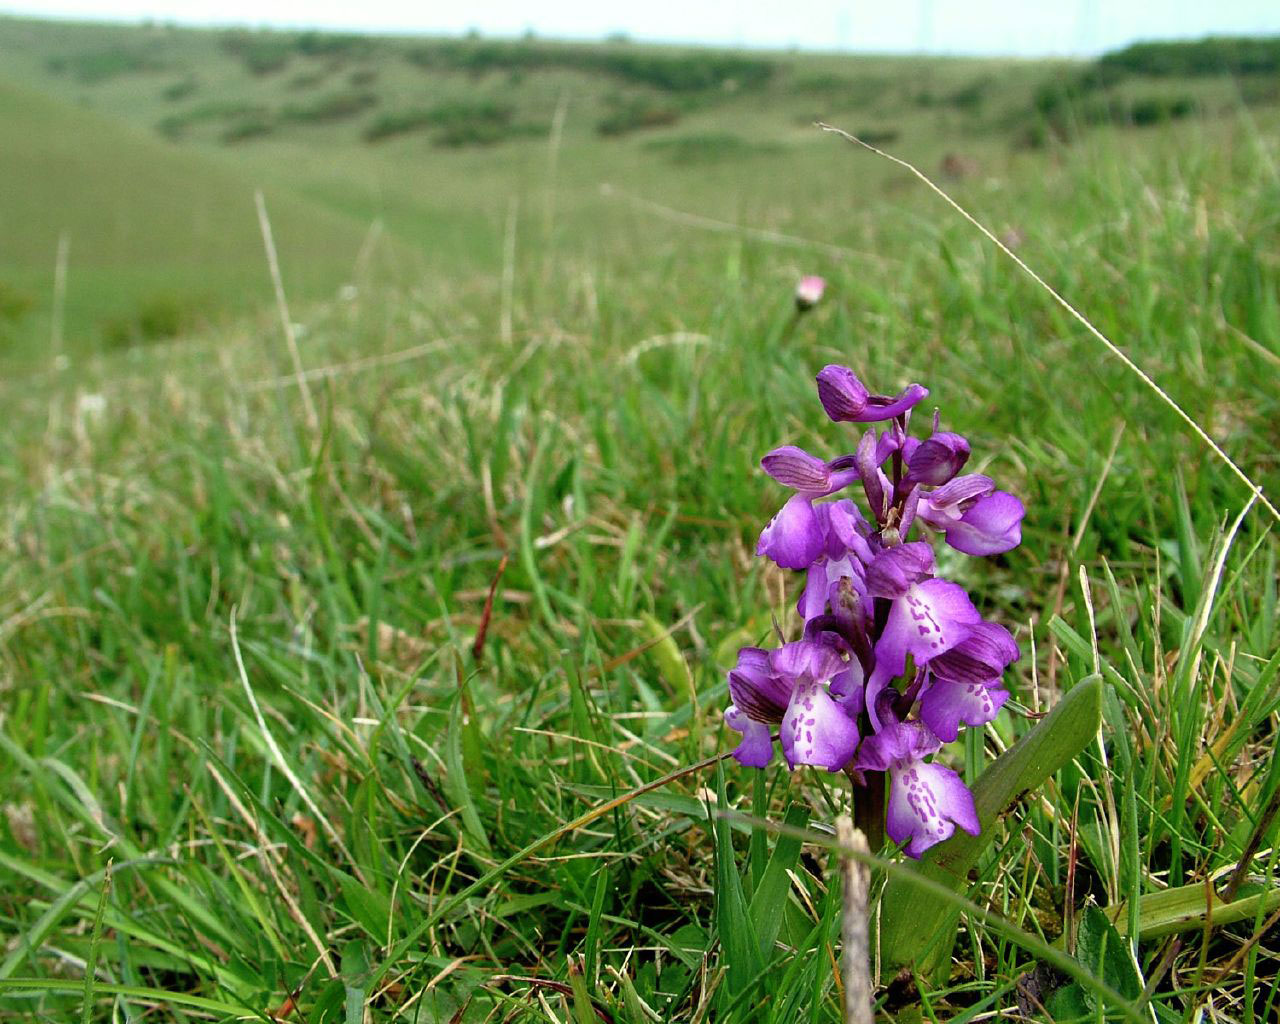 Green-winged Orchid in its habitat (Photograph by Ray Hamblett)